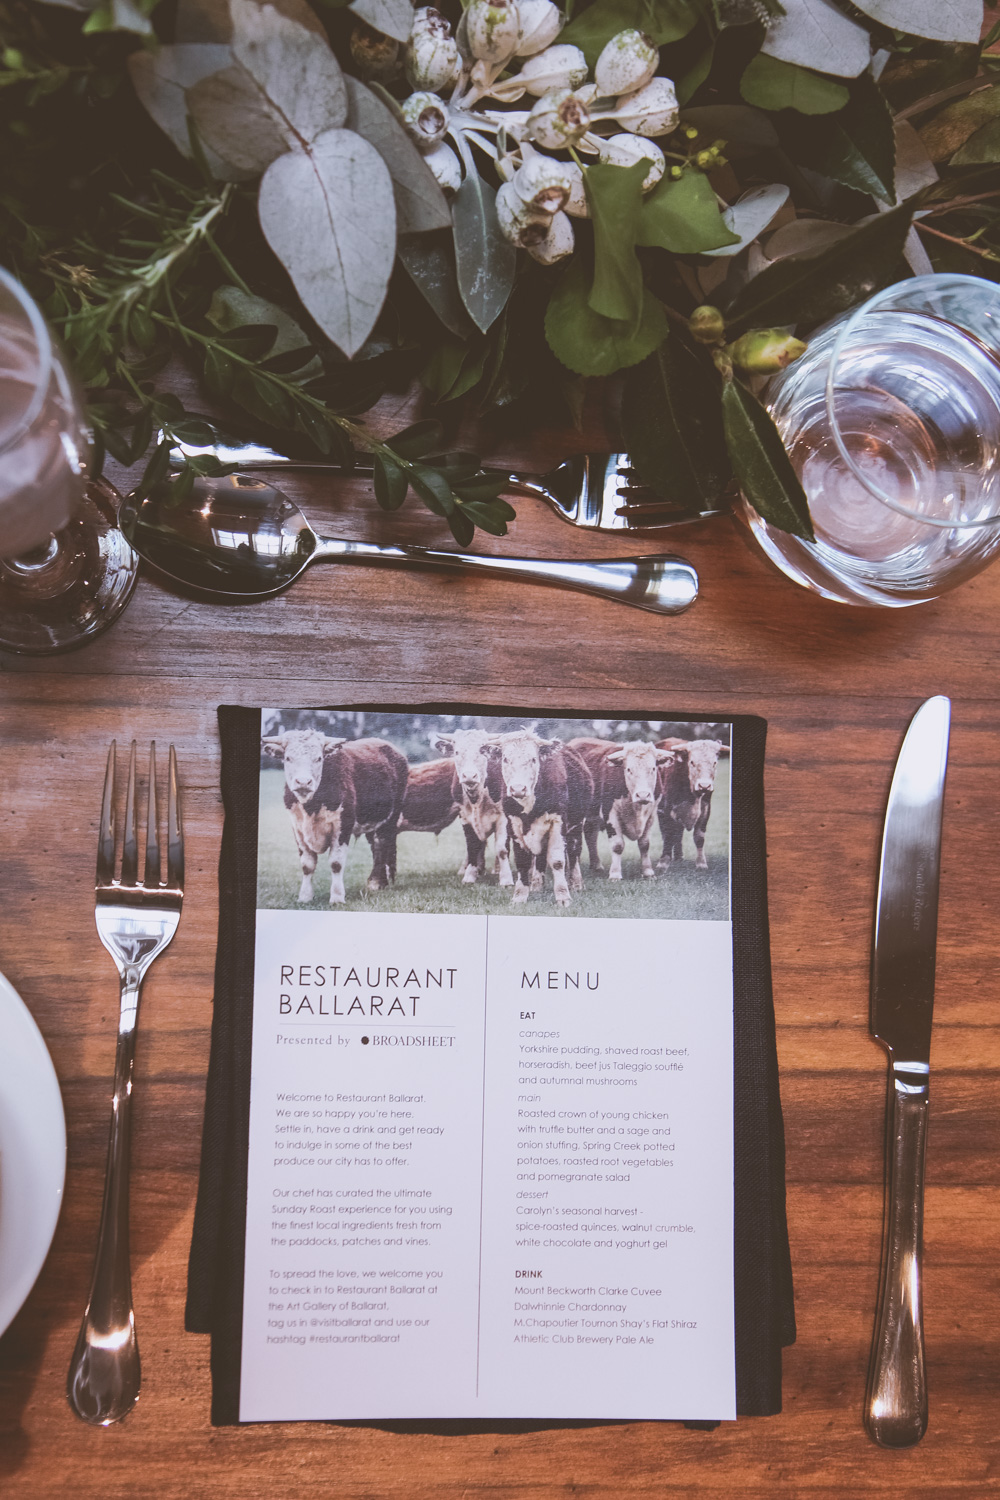 Restaurant Ballarat at the Art Gallery of Ballarat presented by Broadsheet Melbourne